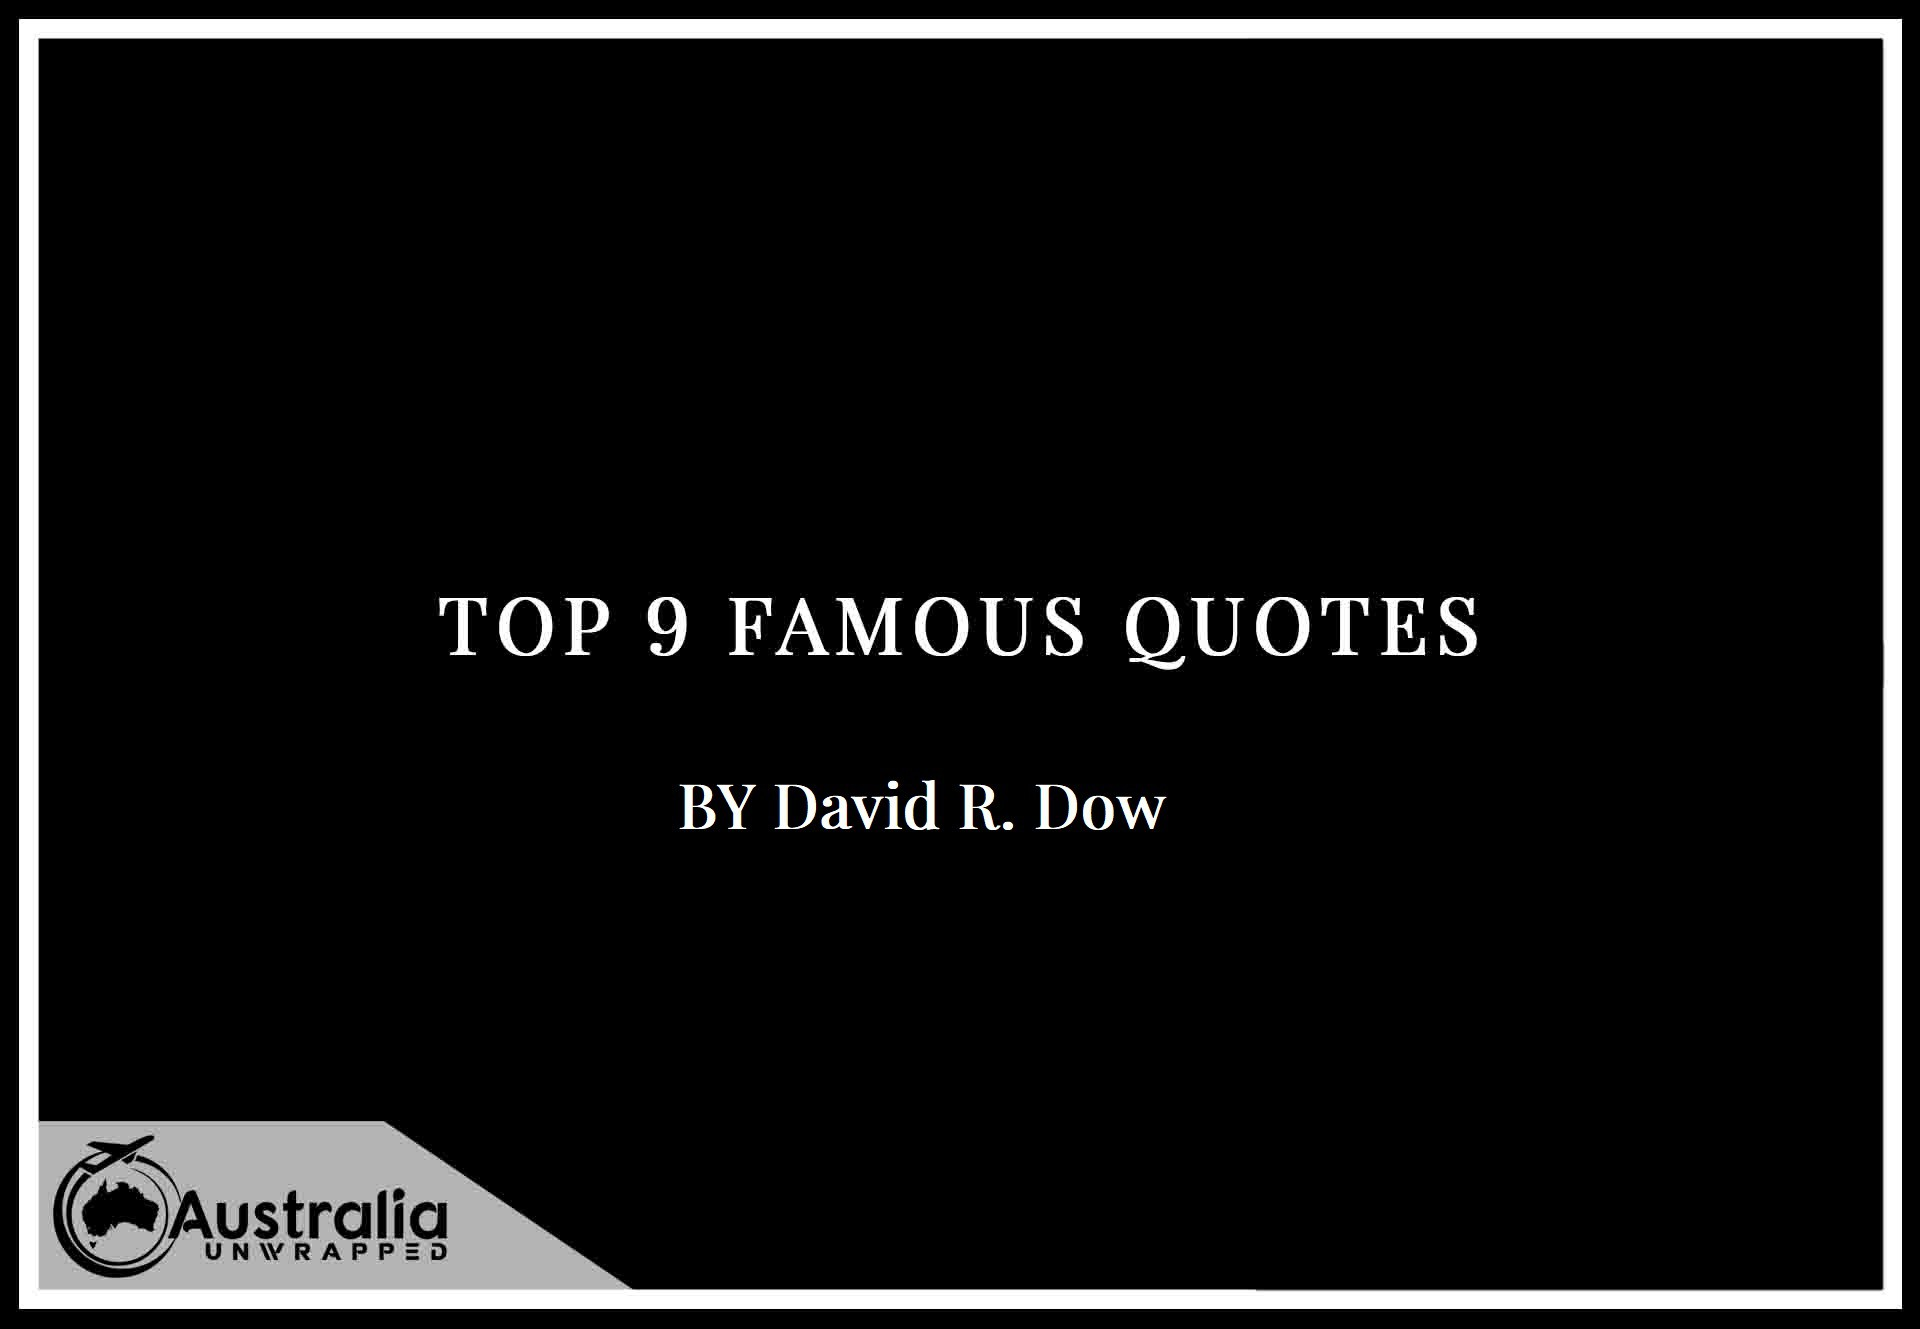 Top 9 Famous Quotes by Author David R. Dow